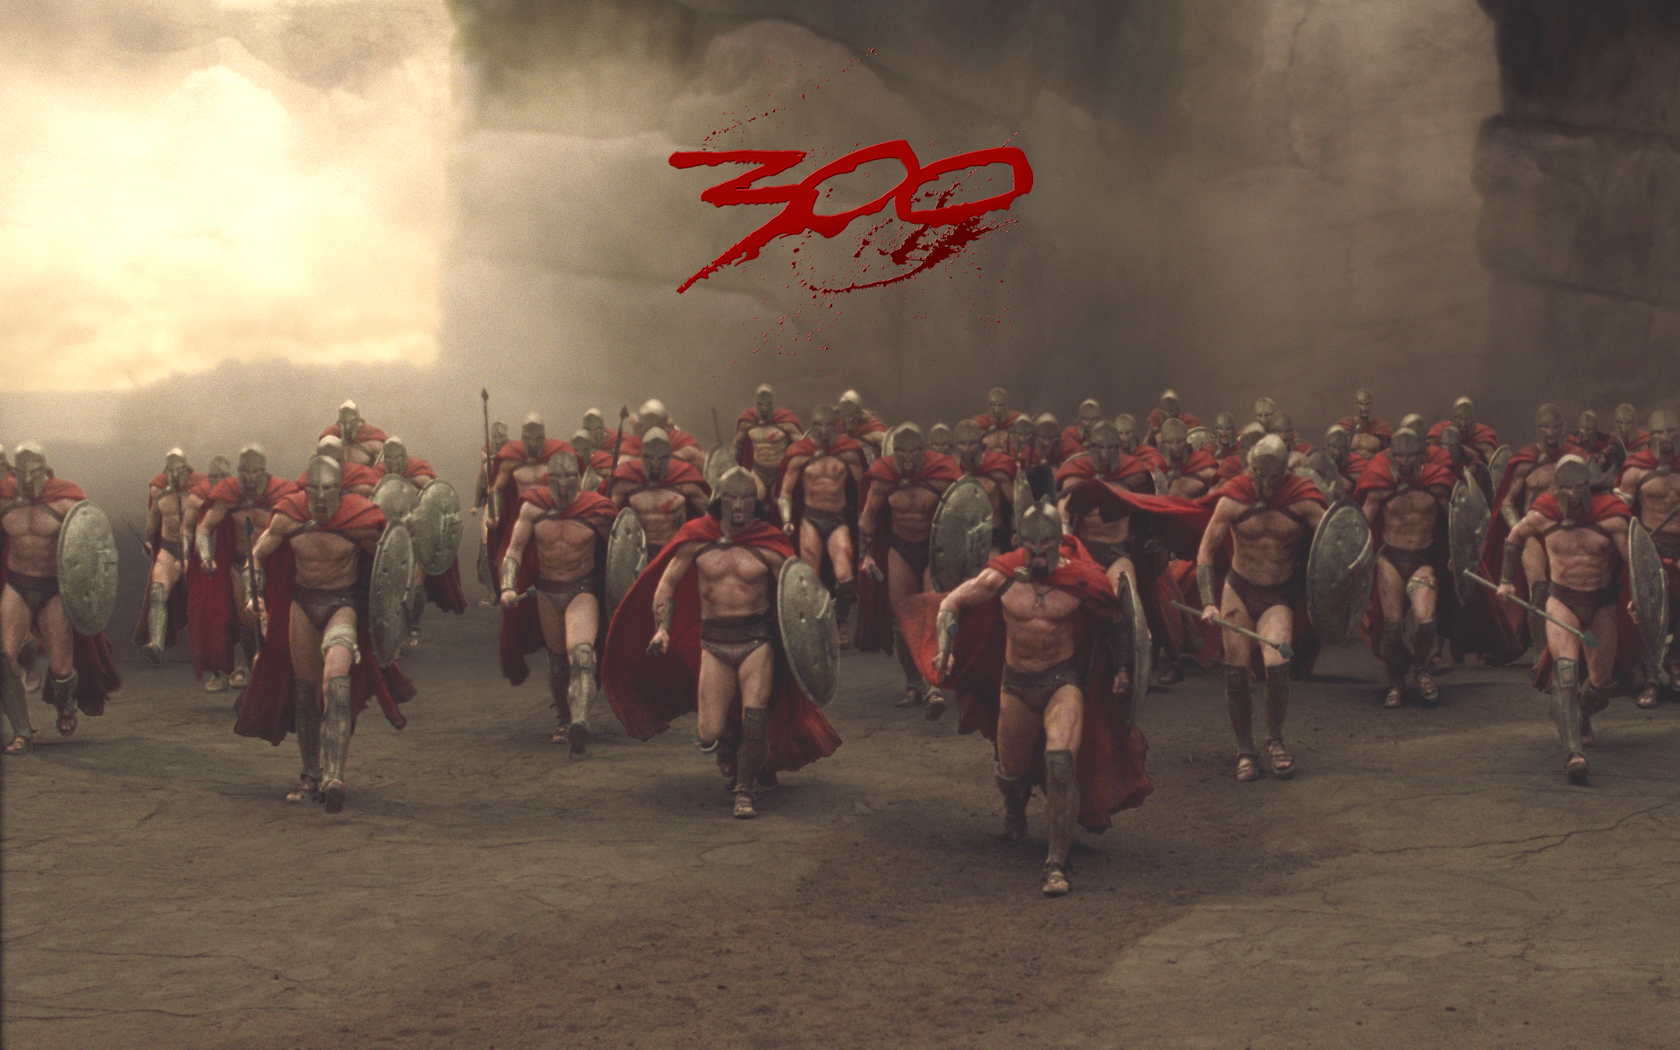 battle of thermopylae was fought history essay Read this history other essay and over 88,000 other research documents battle of thermopylae the battle of thermopylae of 480 bc, an alliance of greek city-states fought the invading.